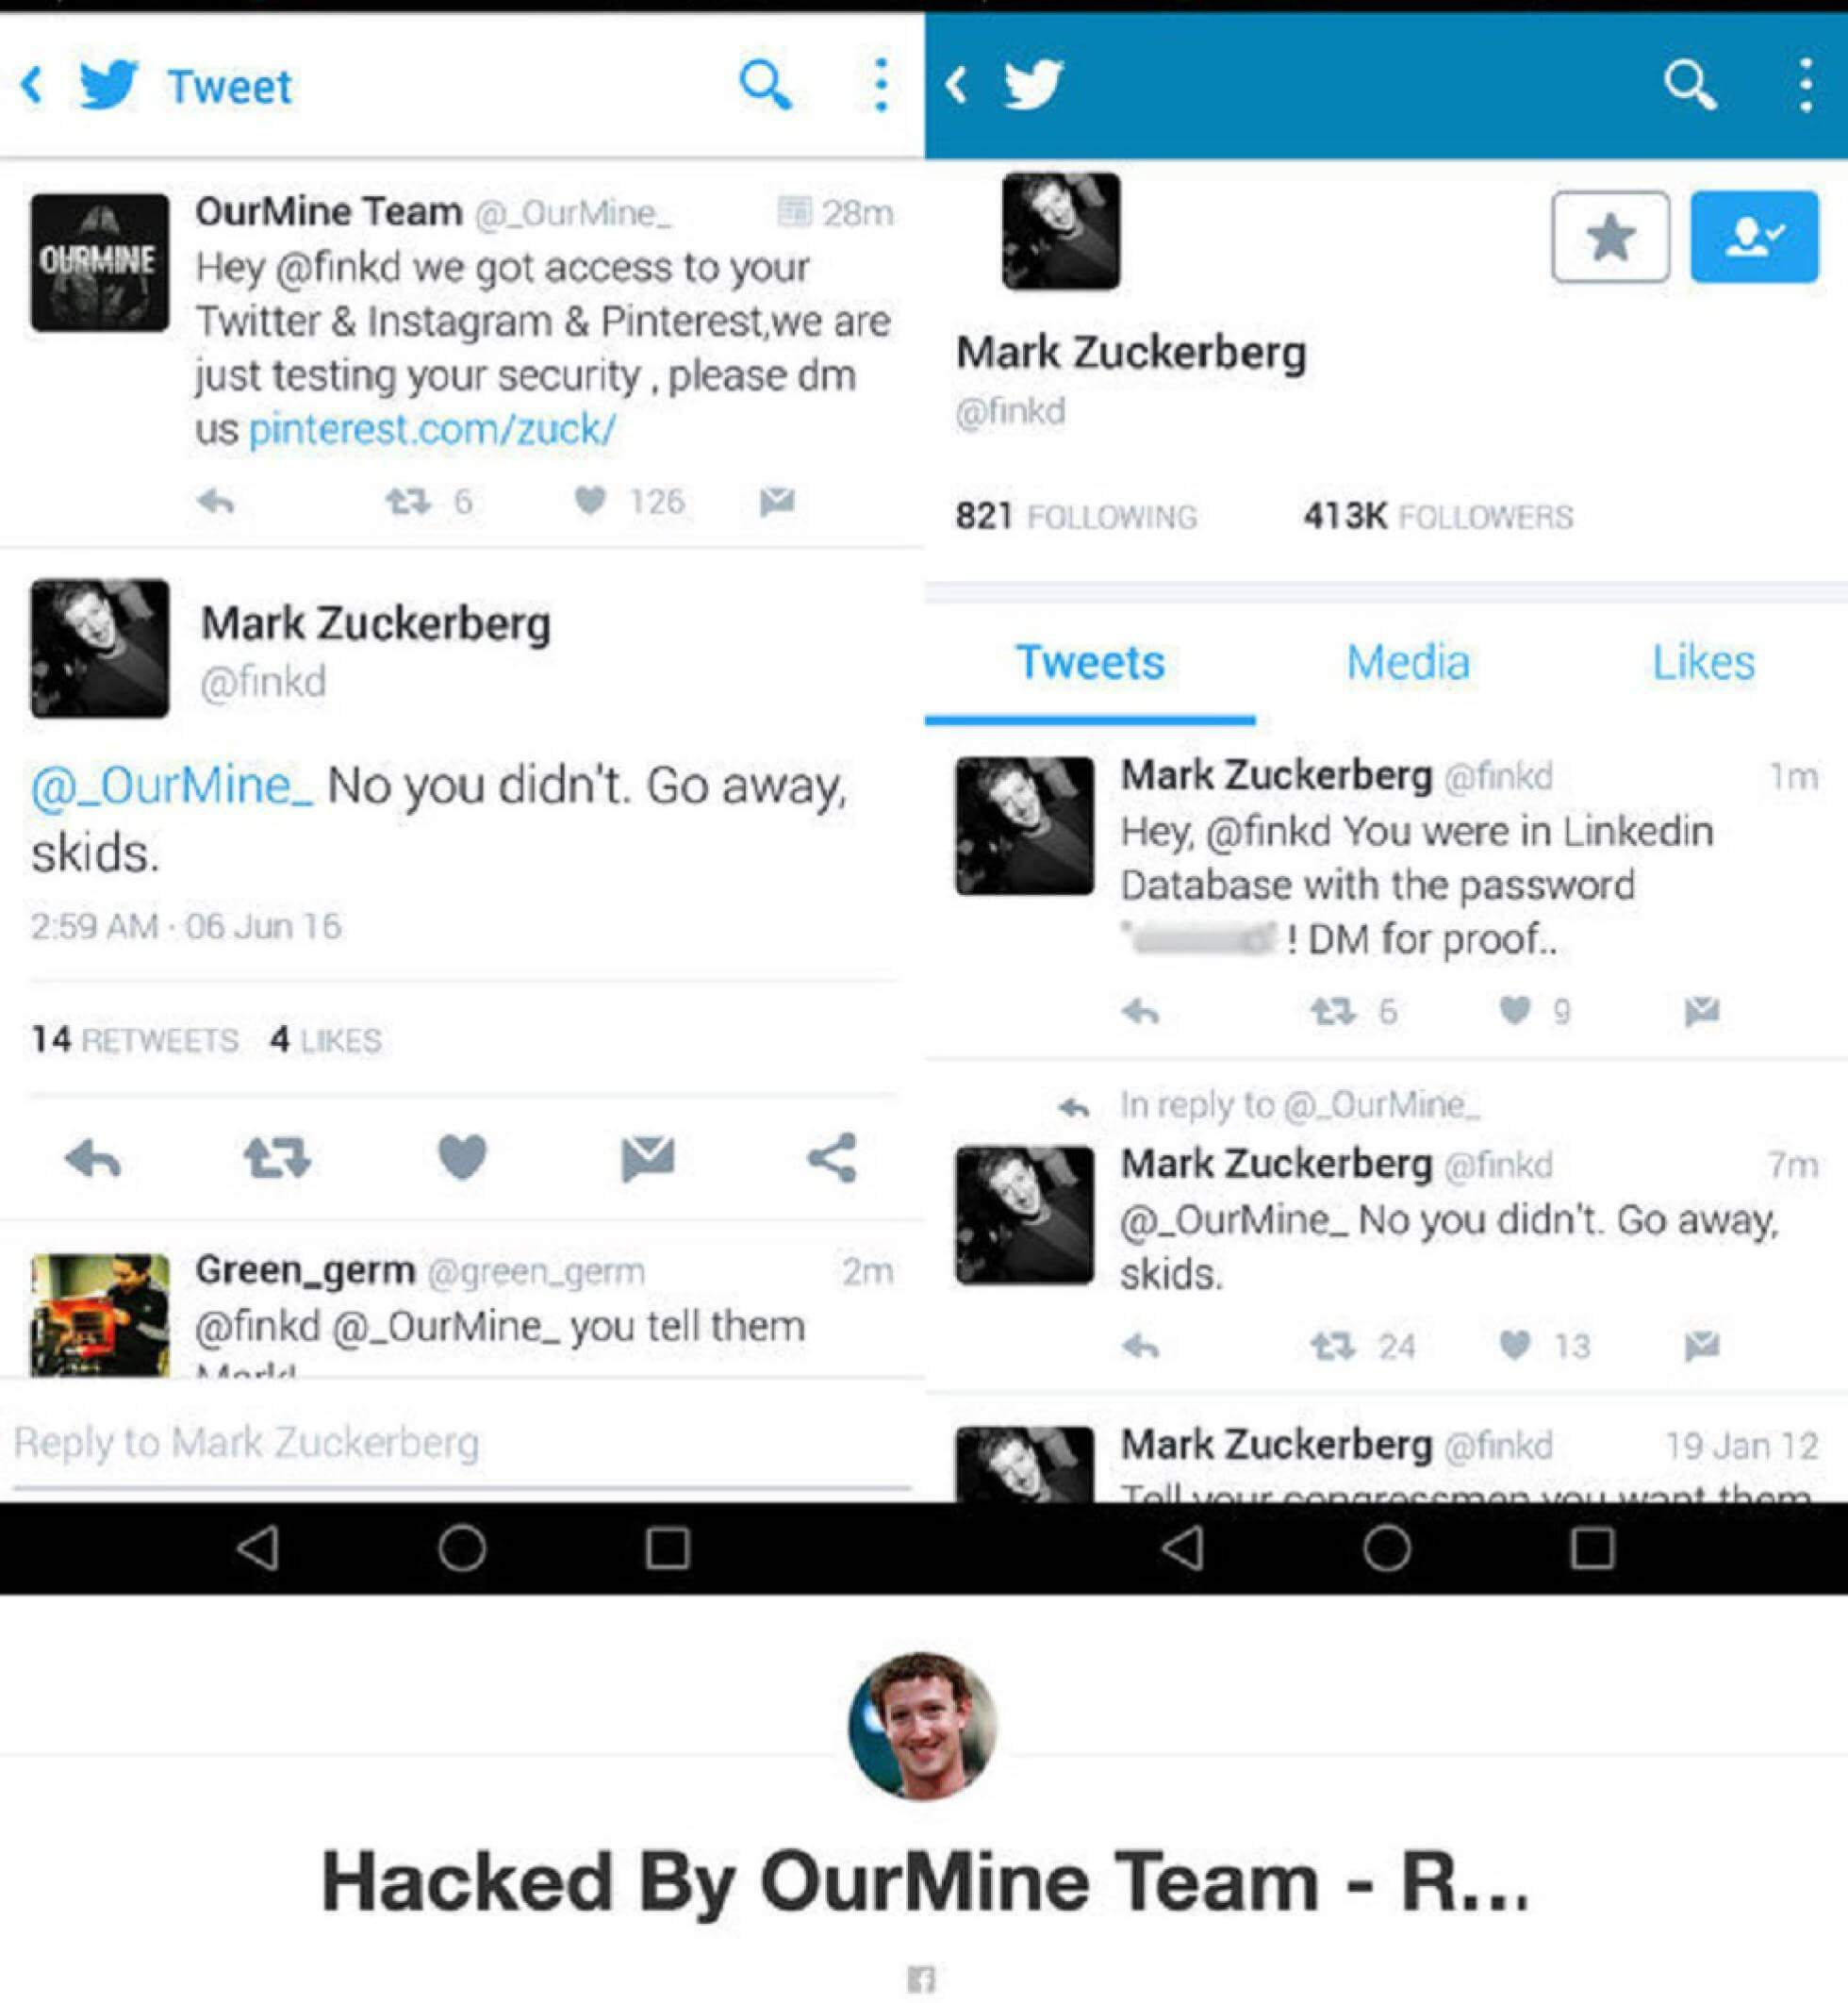 Mark Zuckerberg hacked Twitter account screenshot.